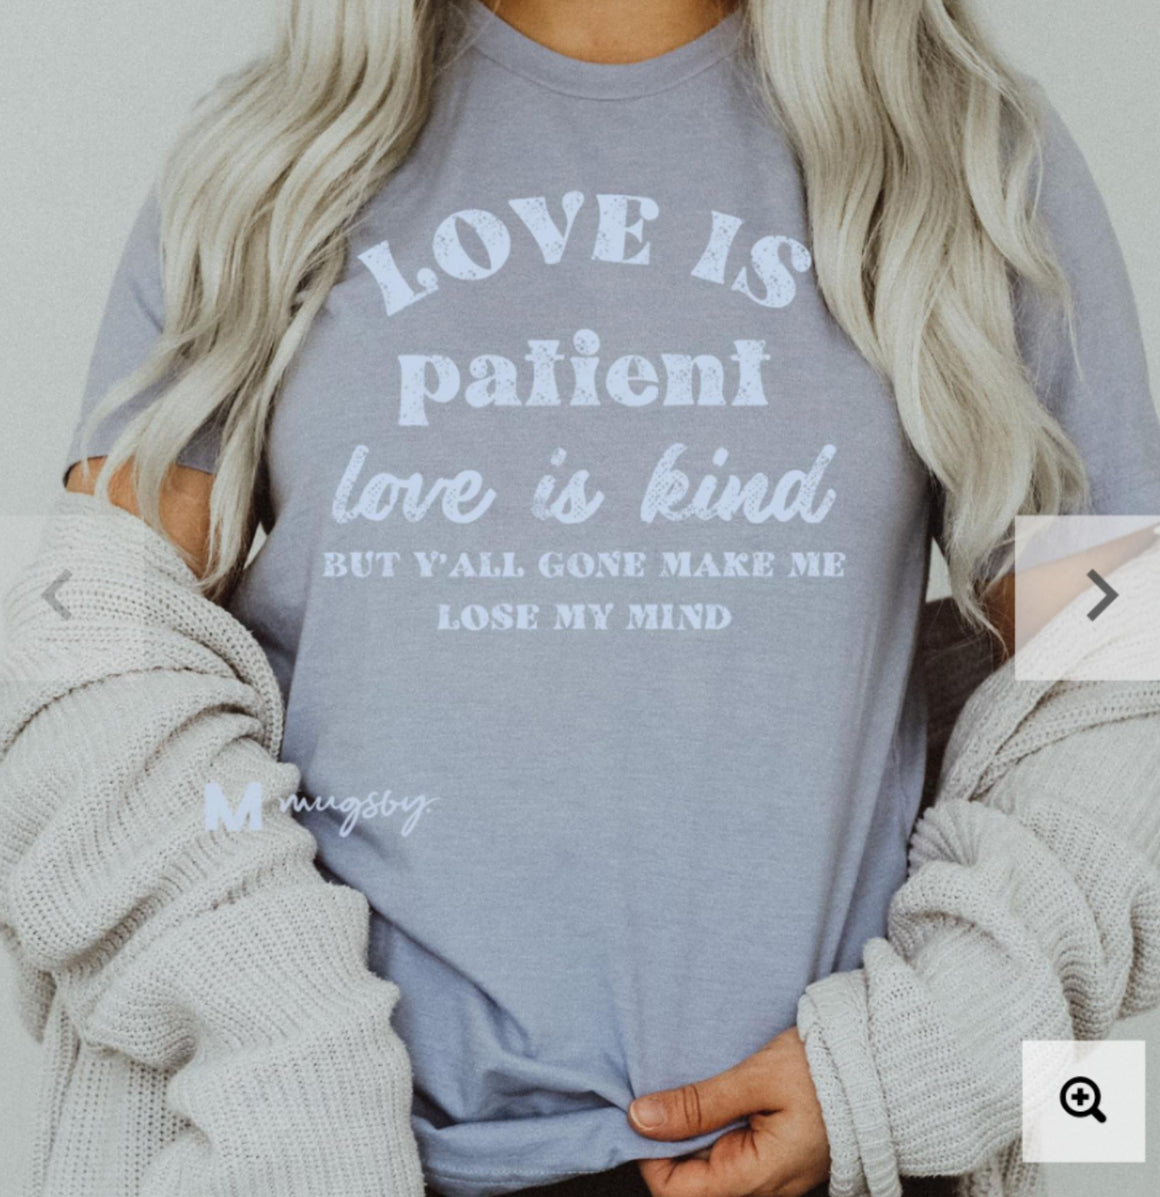 LOVE IS PATIENT SASSY TEE Graphic Tees mugsby